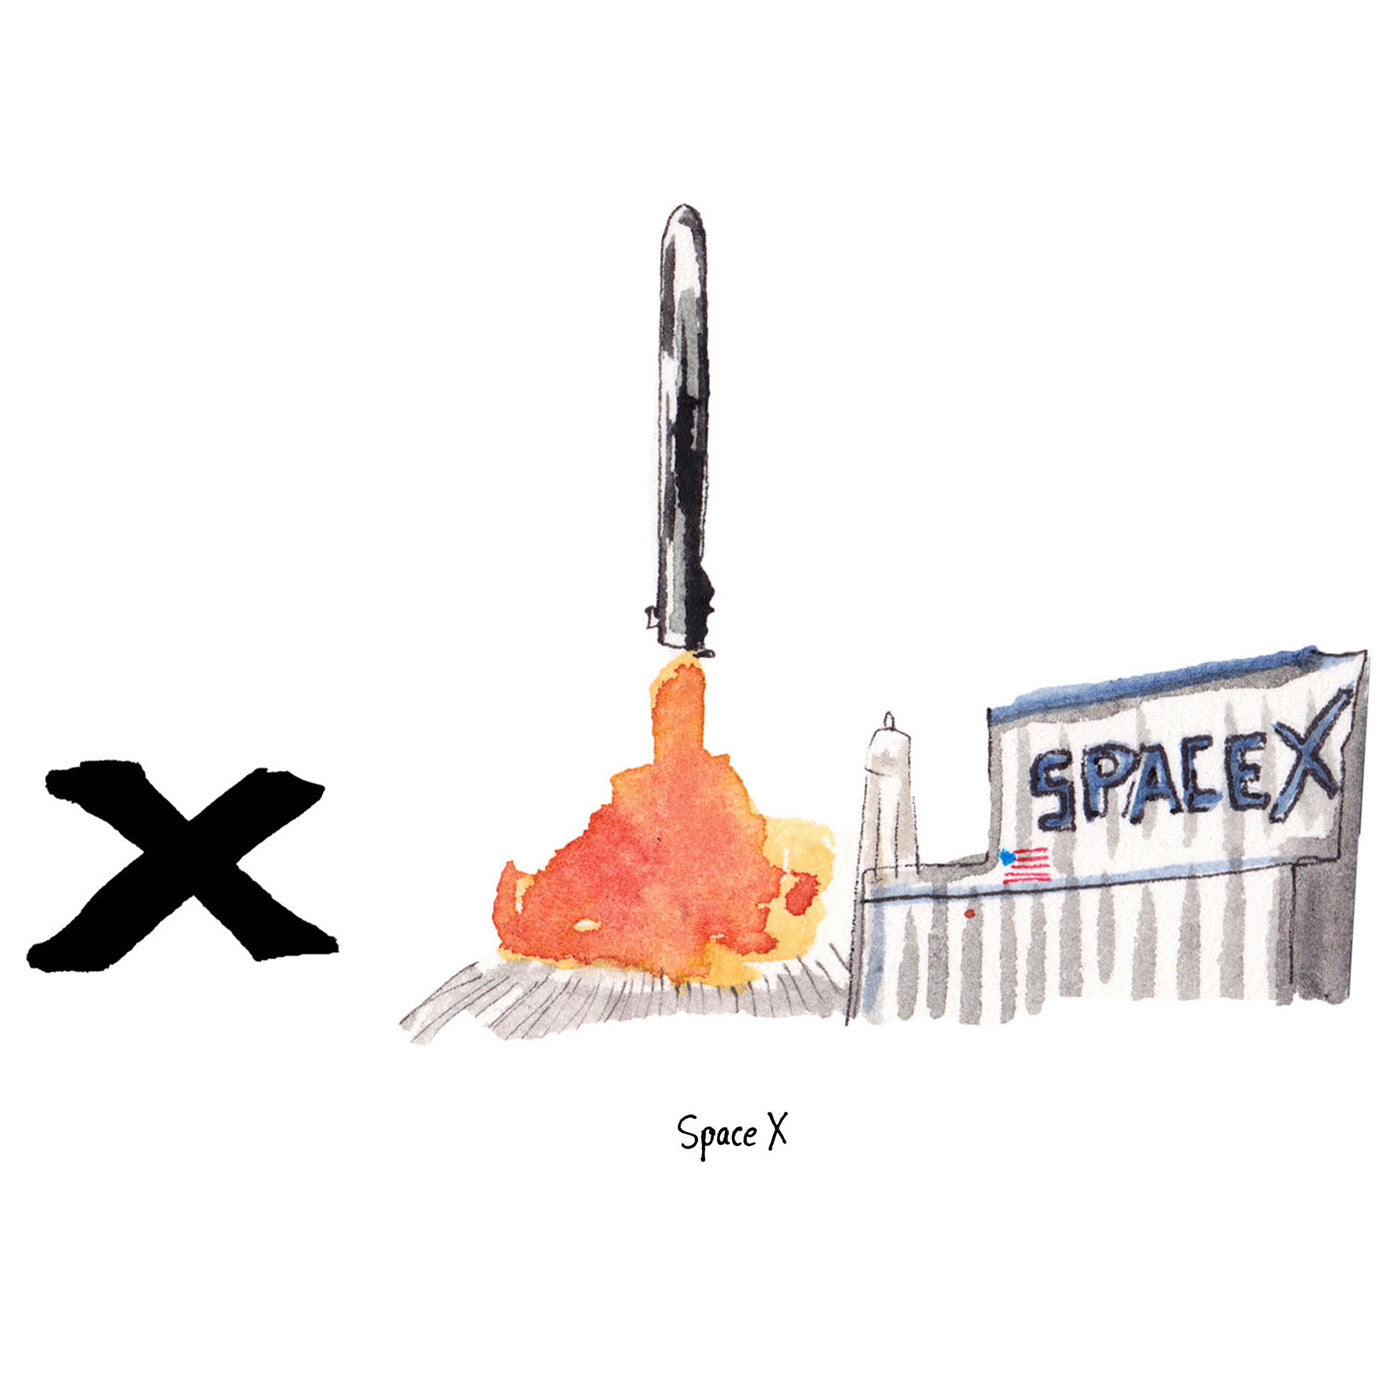 X is for SpaceX. SpaceX is a private aerospace manufacturer and space transportation service company located outside of Los Angeles, founded by Elon Musk.